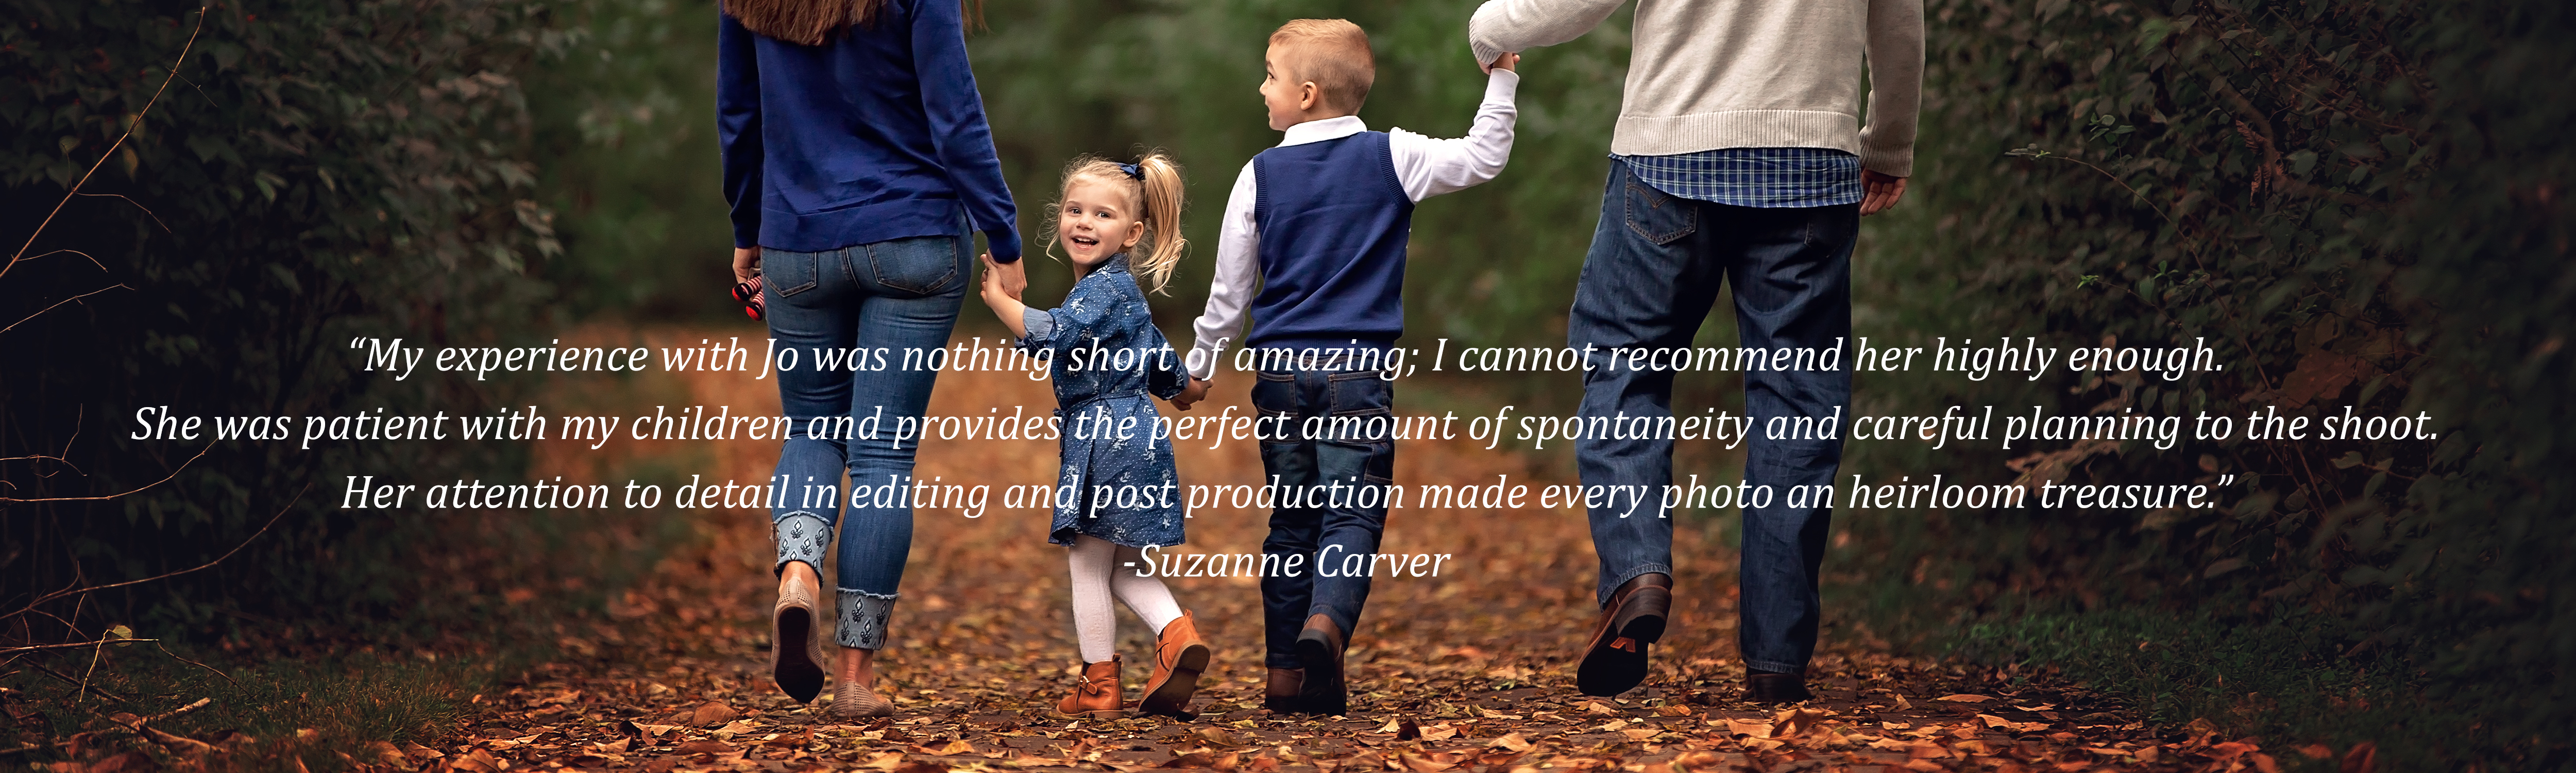 Testimonial for Jo McVey Photography